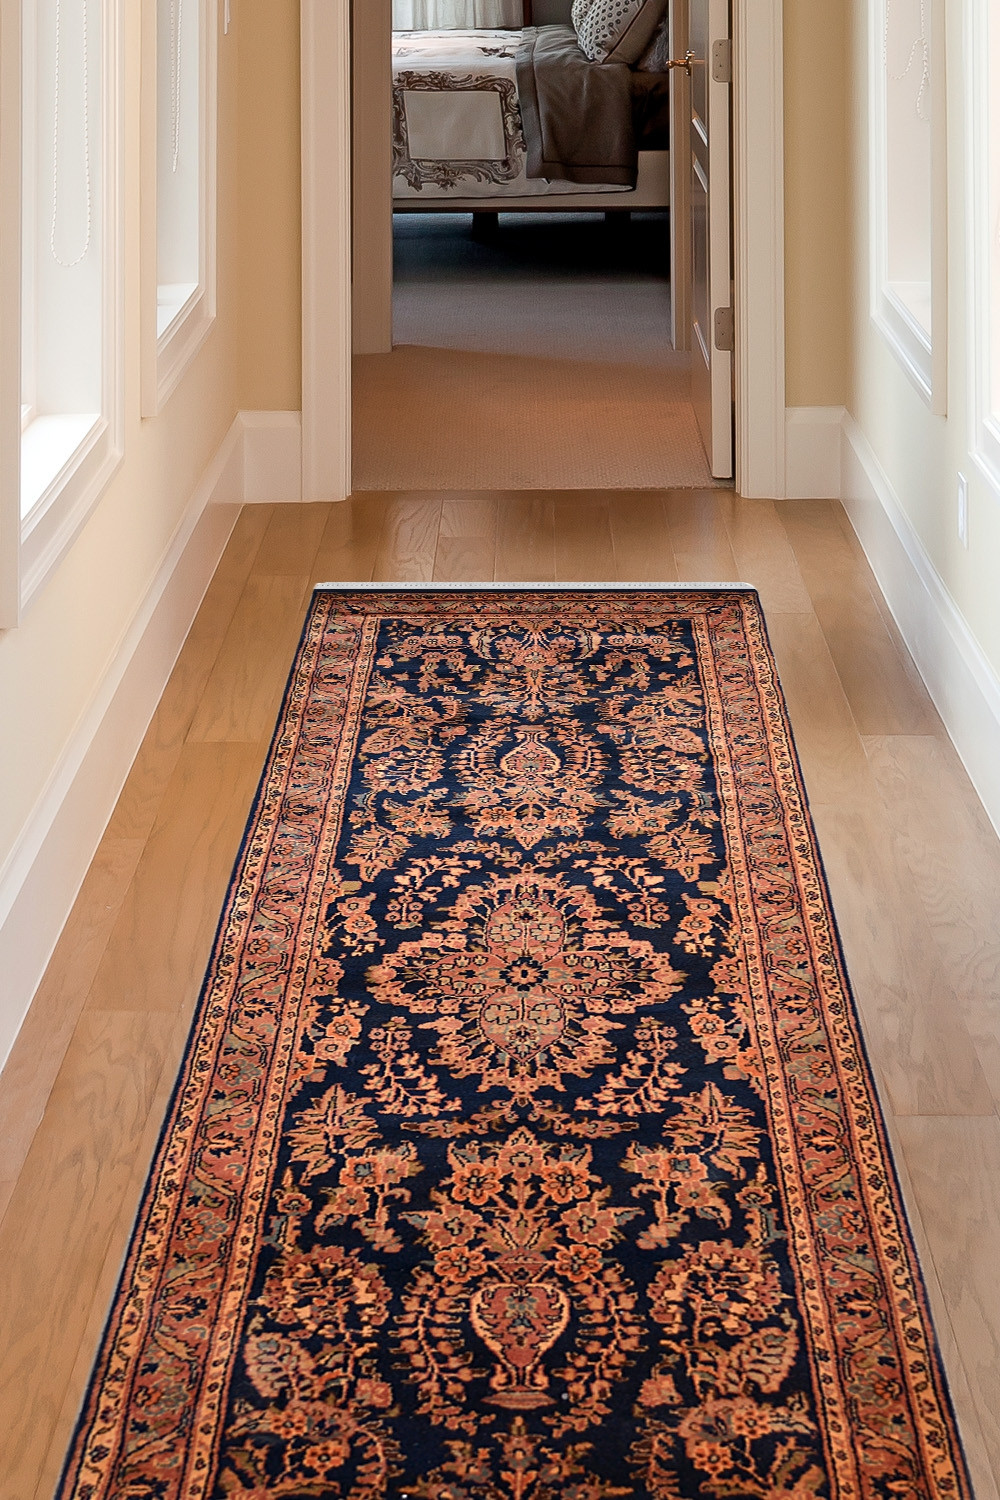 Jhoomar Series Wool Area Carpets For Sale At Best Price Online